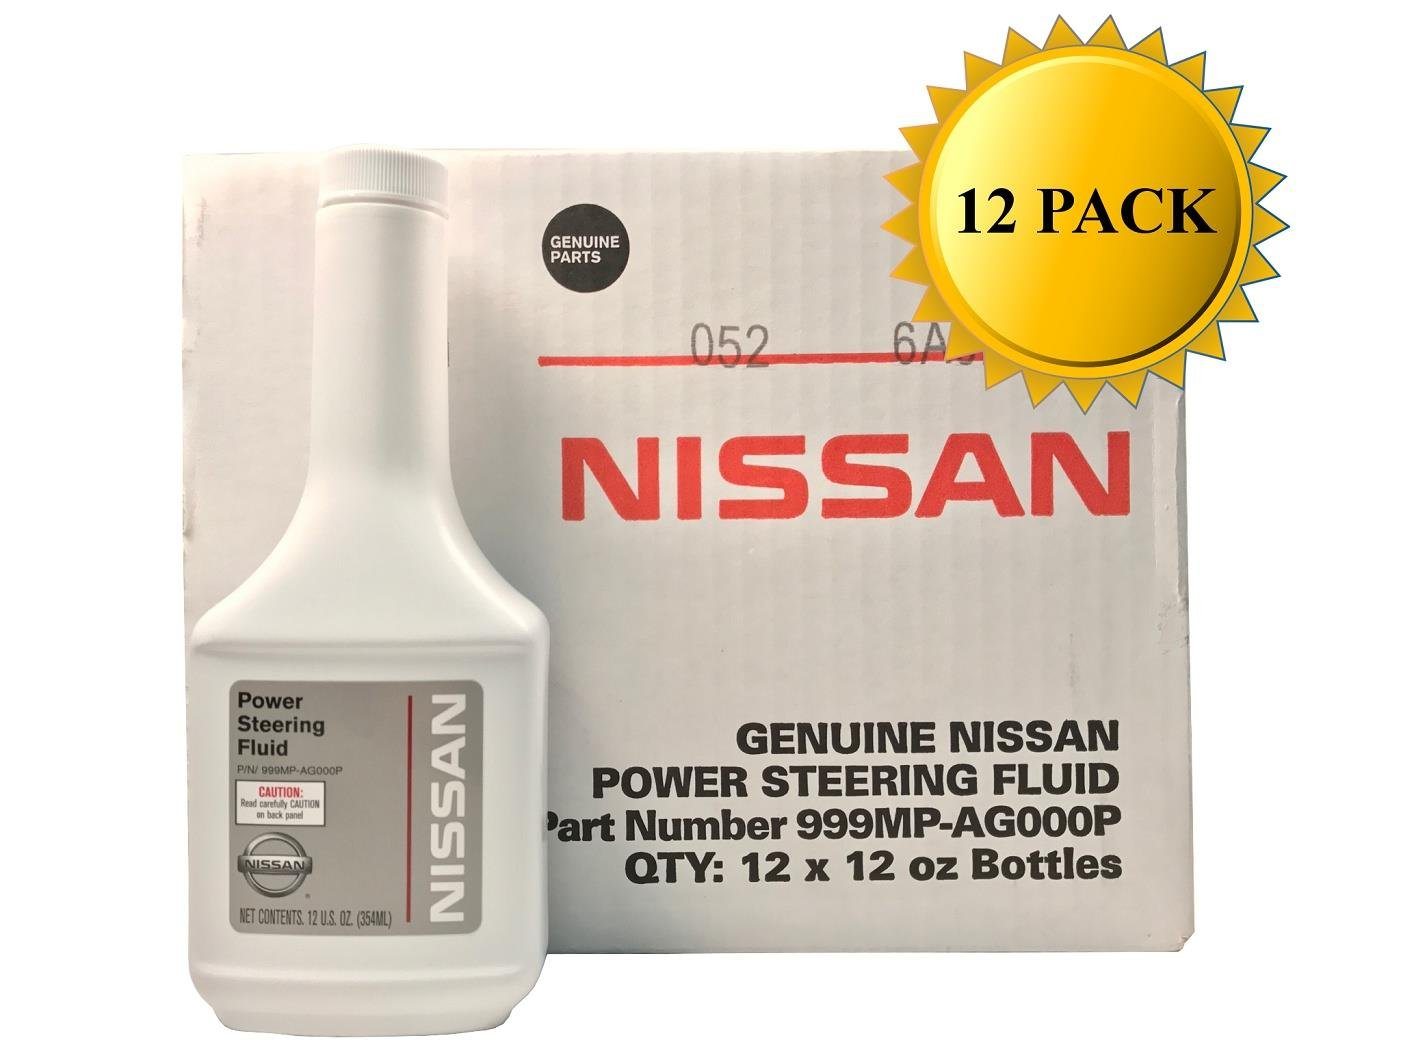 Genuine Nissan OEM Power Steering Fluid 999MP-AG000P (Case of 12)